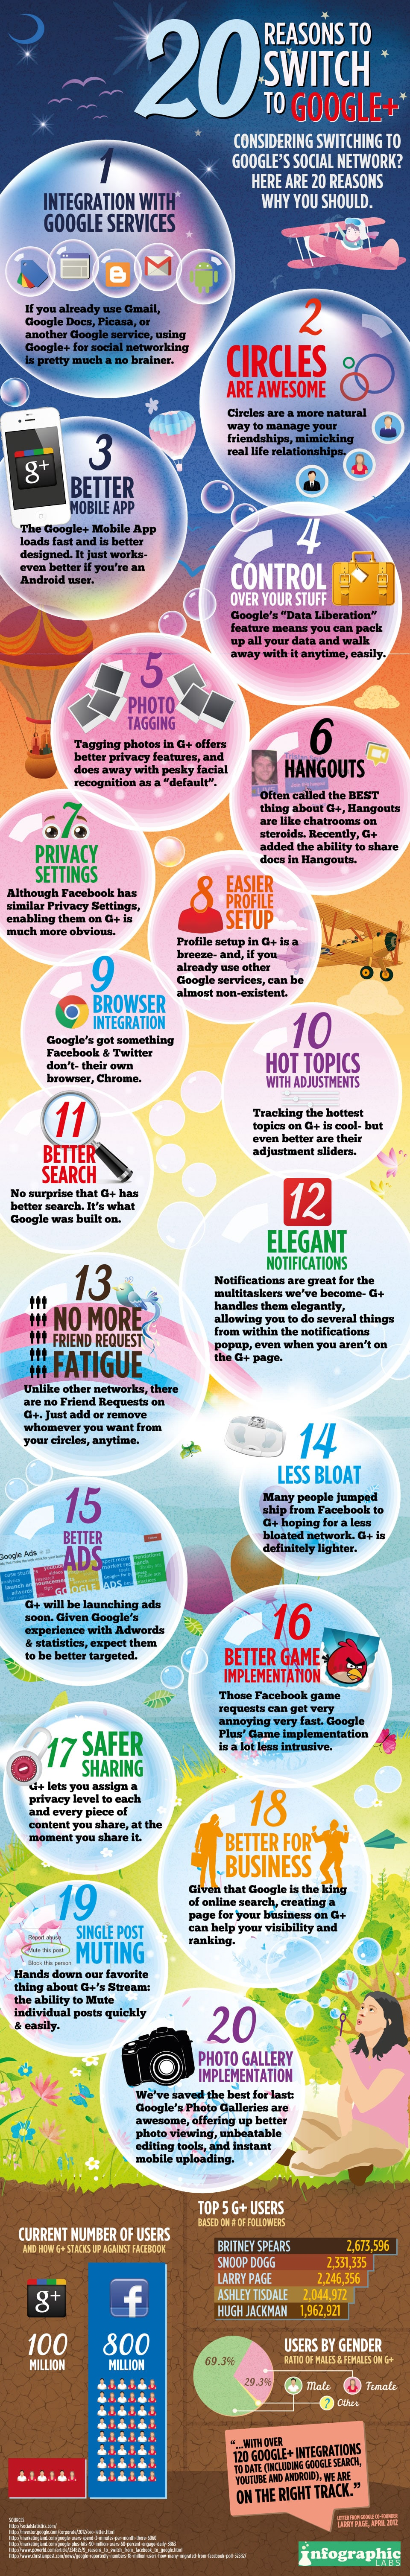 20 Reasons To Switch To Google+ [Infographic]